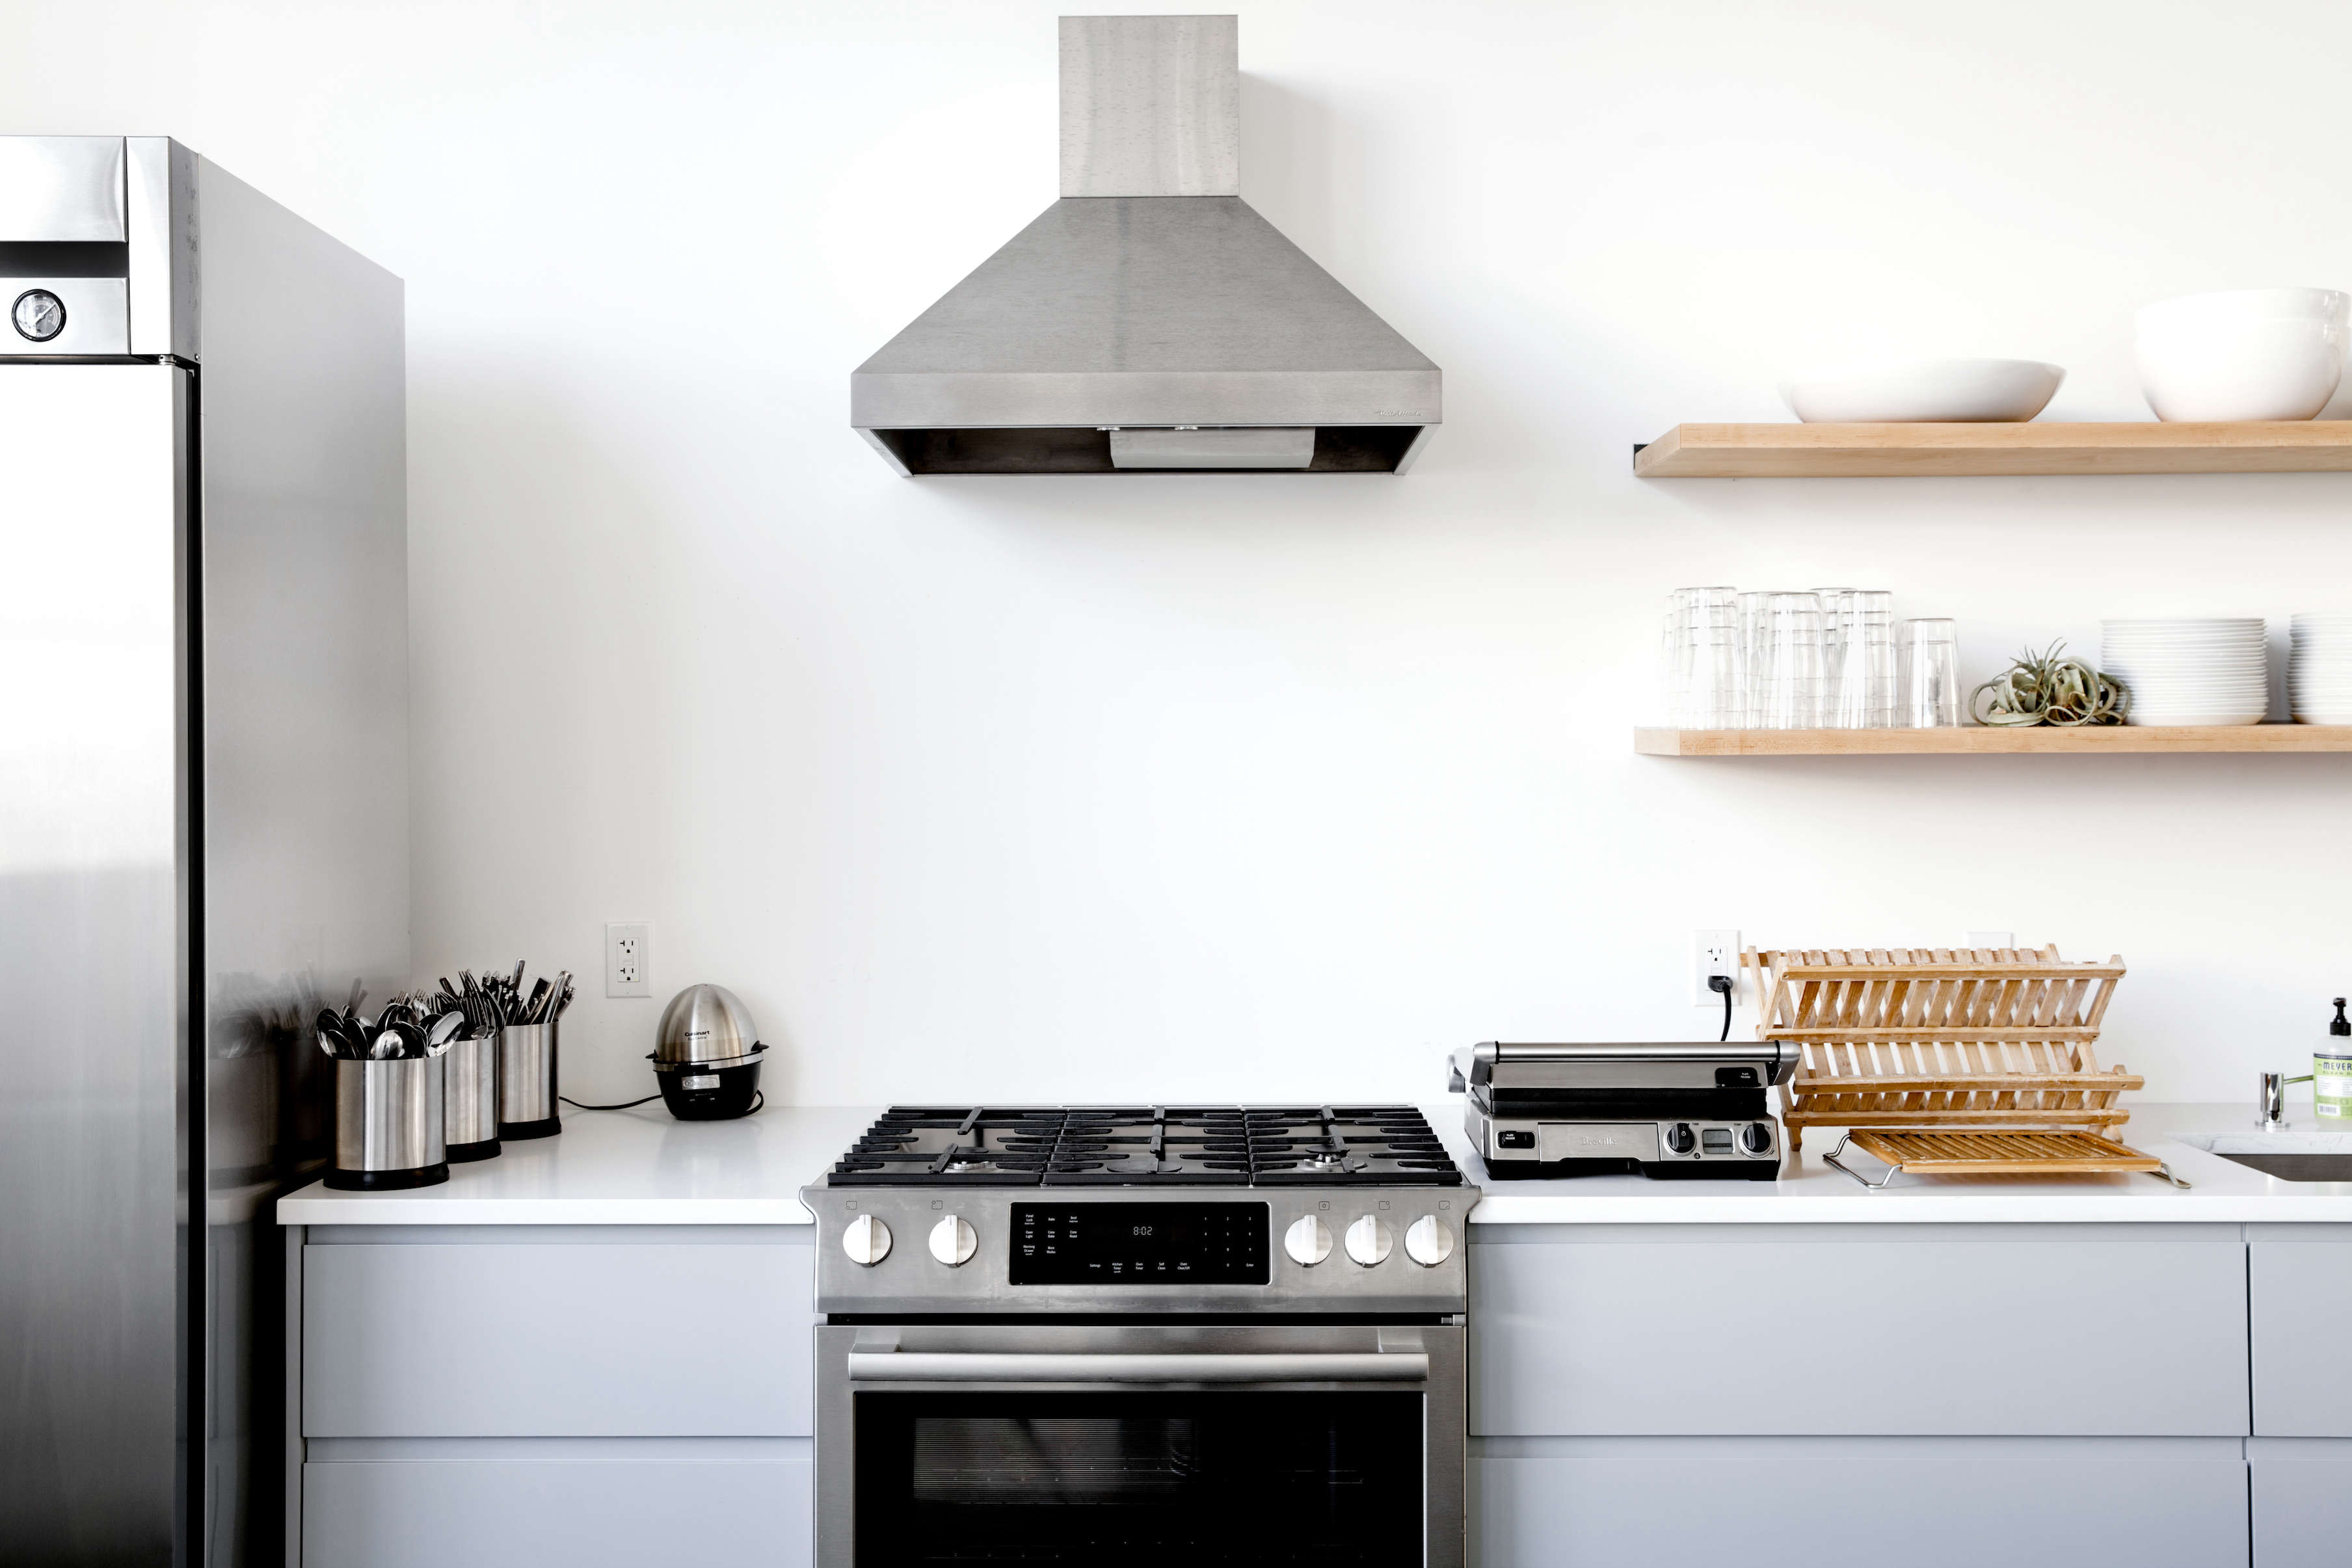 Gray kitchen cabinets in Everlane's office in SF, Carlos Chavarría photo | Remodelista